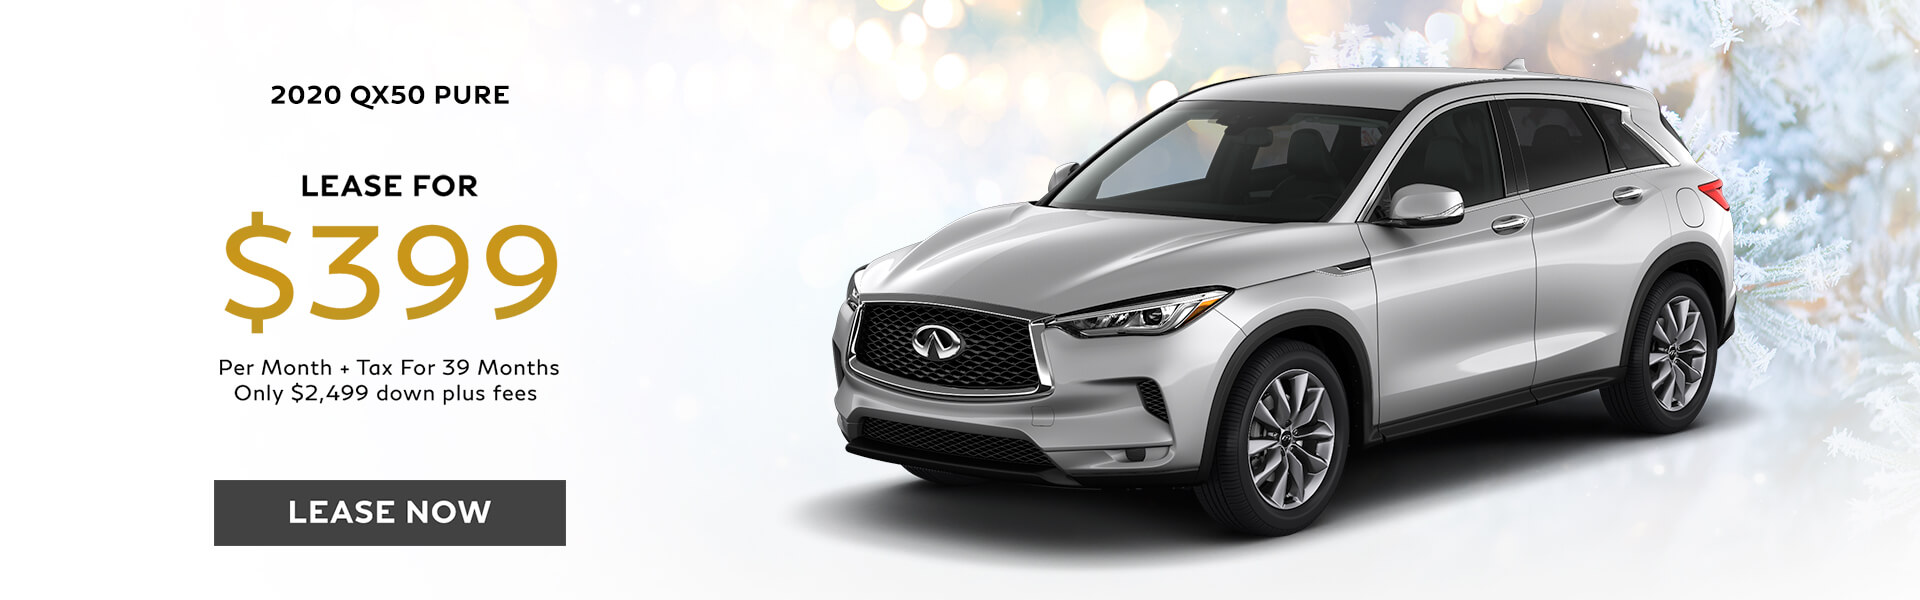 QX50 PURE - Lease for $399